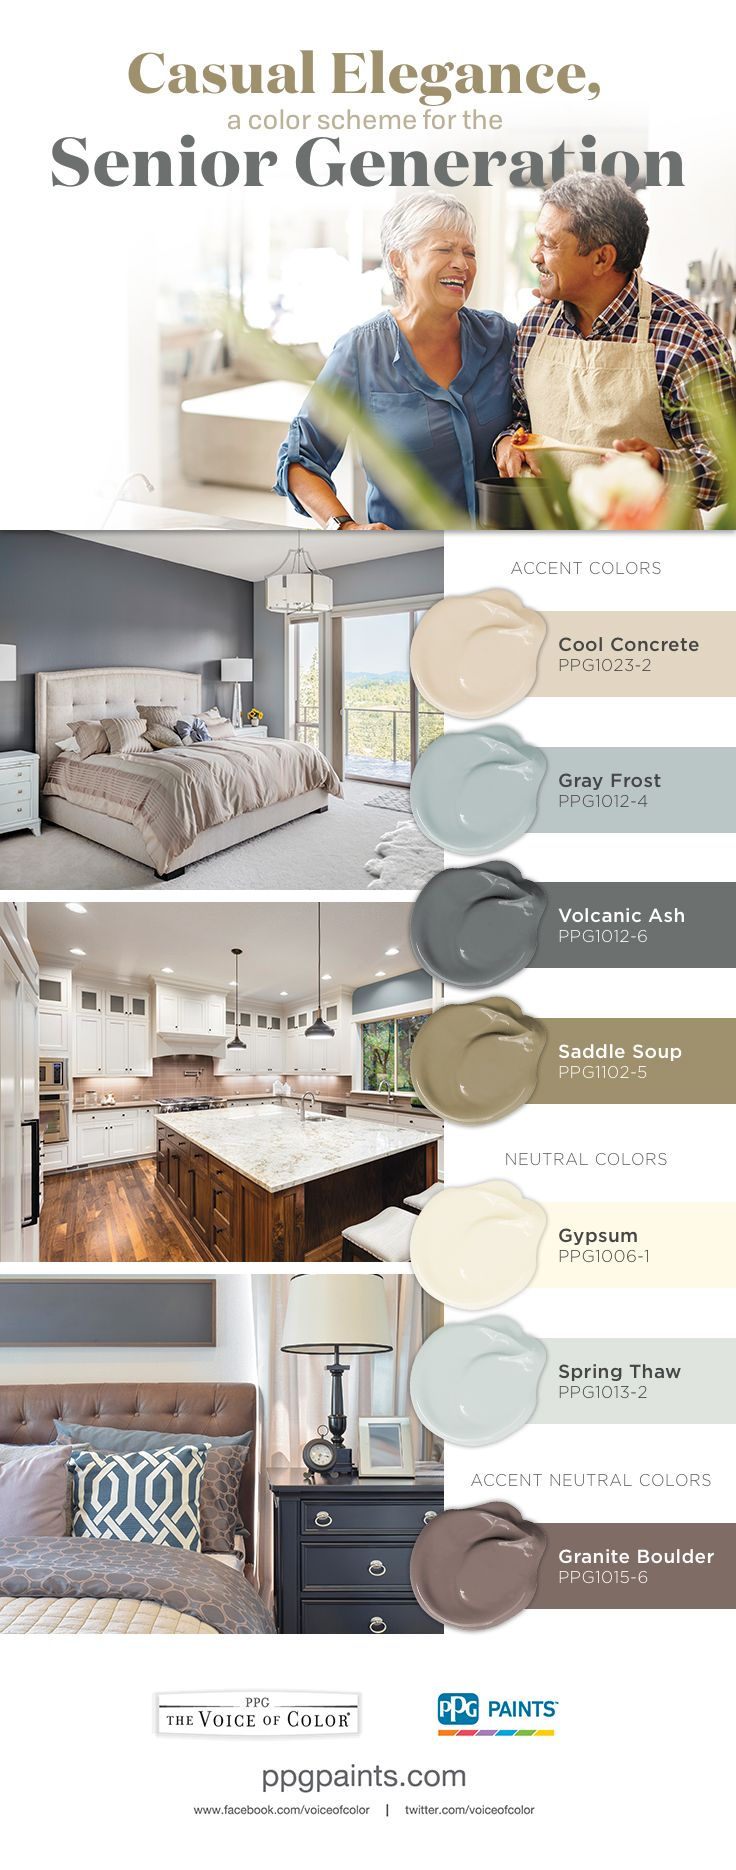 Casual Elegance, a Color Scheme for the Senior Generation | The Casual Elegance color palette is designed to perfection for Seniors. With timeless and quality colors, this palette compliments the Senior lifestyle.